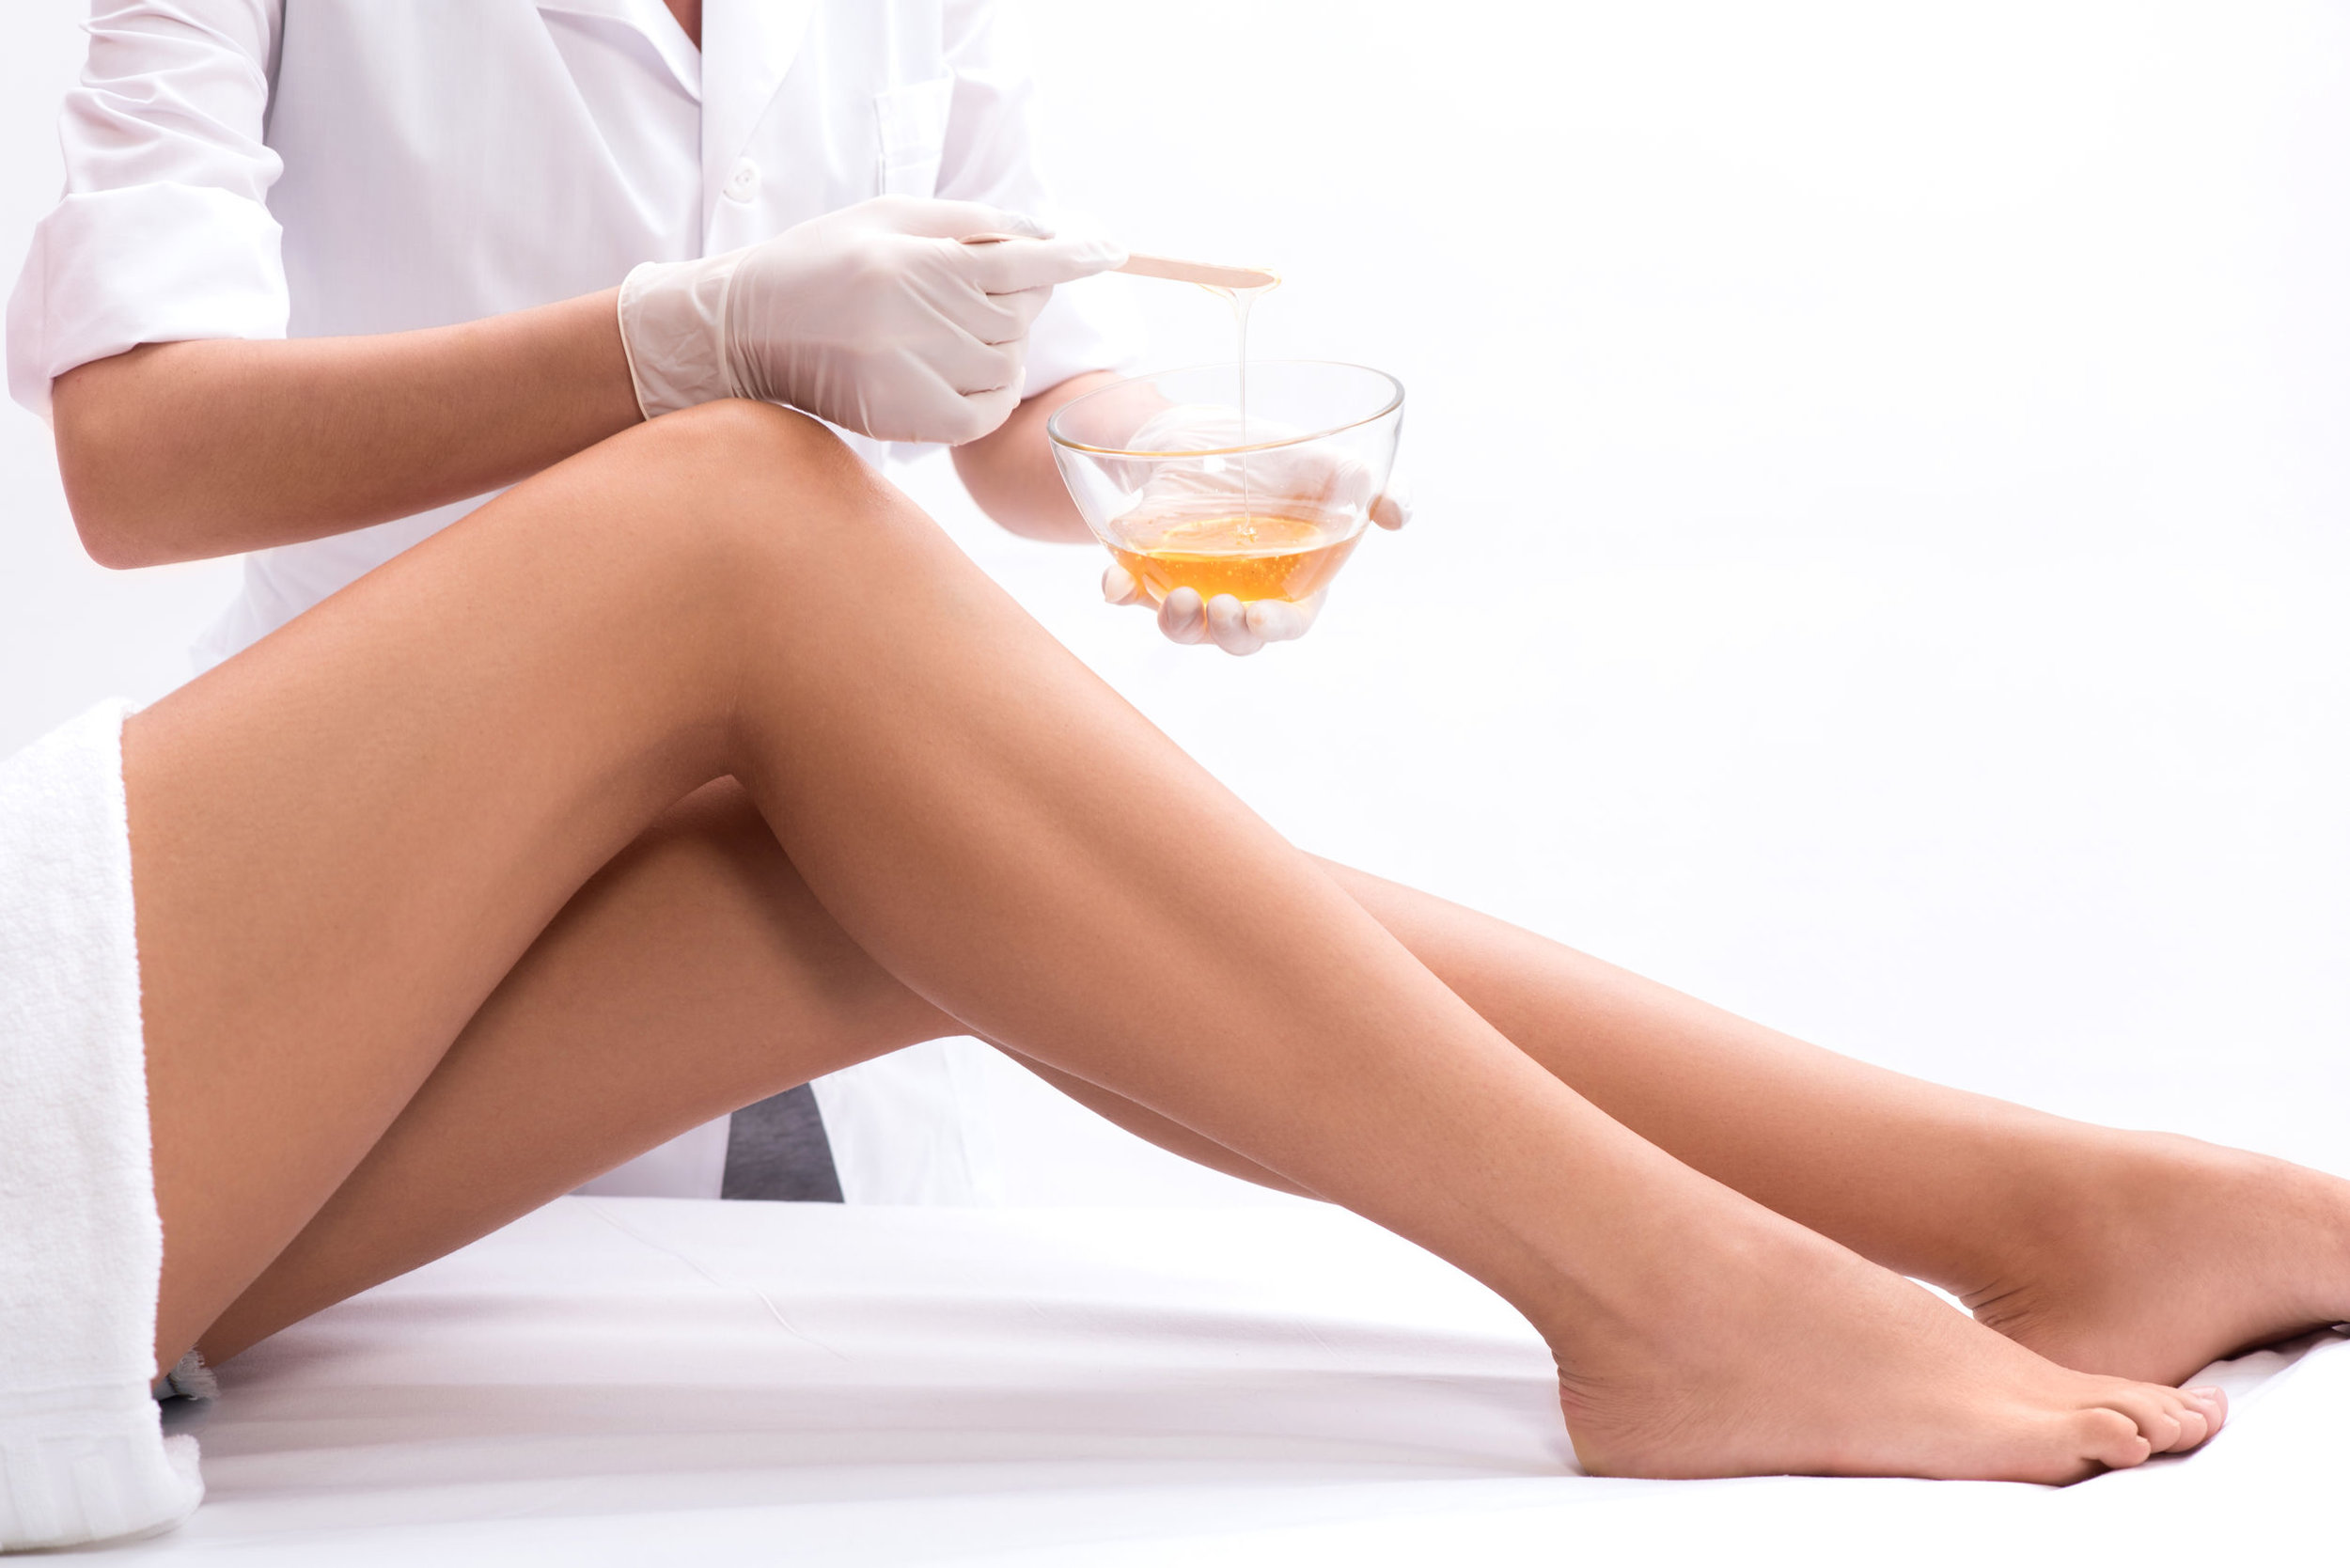 waxing-services-birch-tree-day-spa.jpg